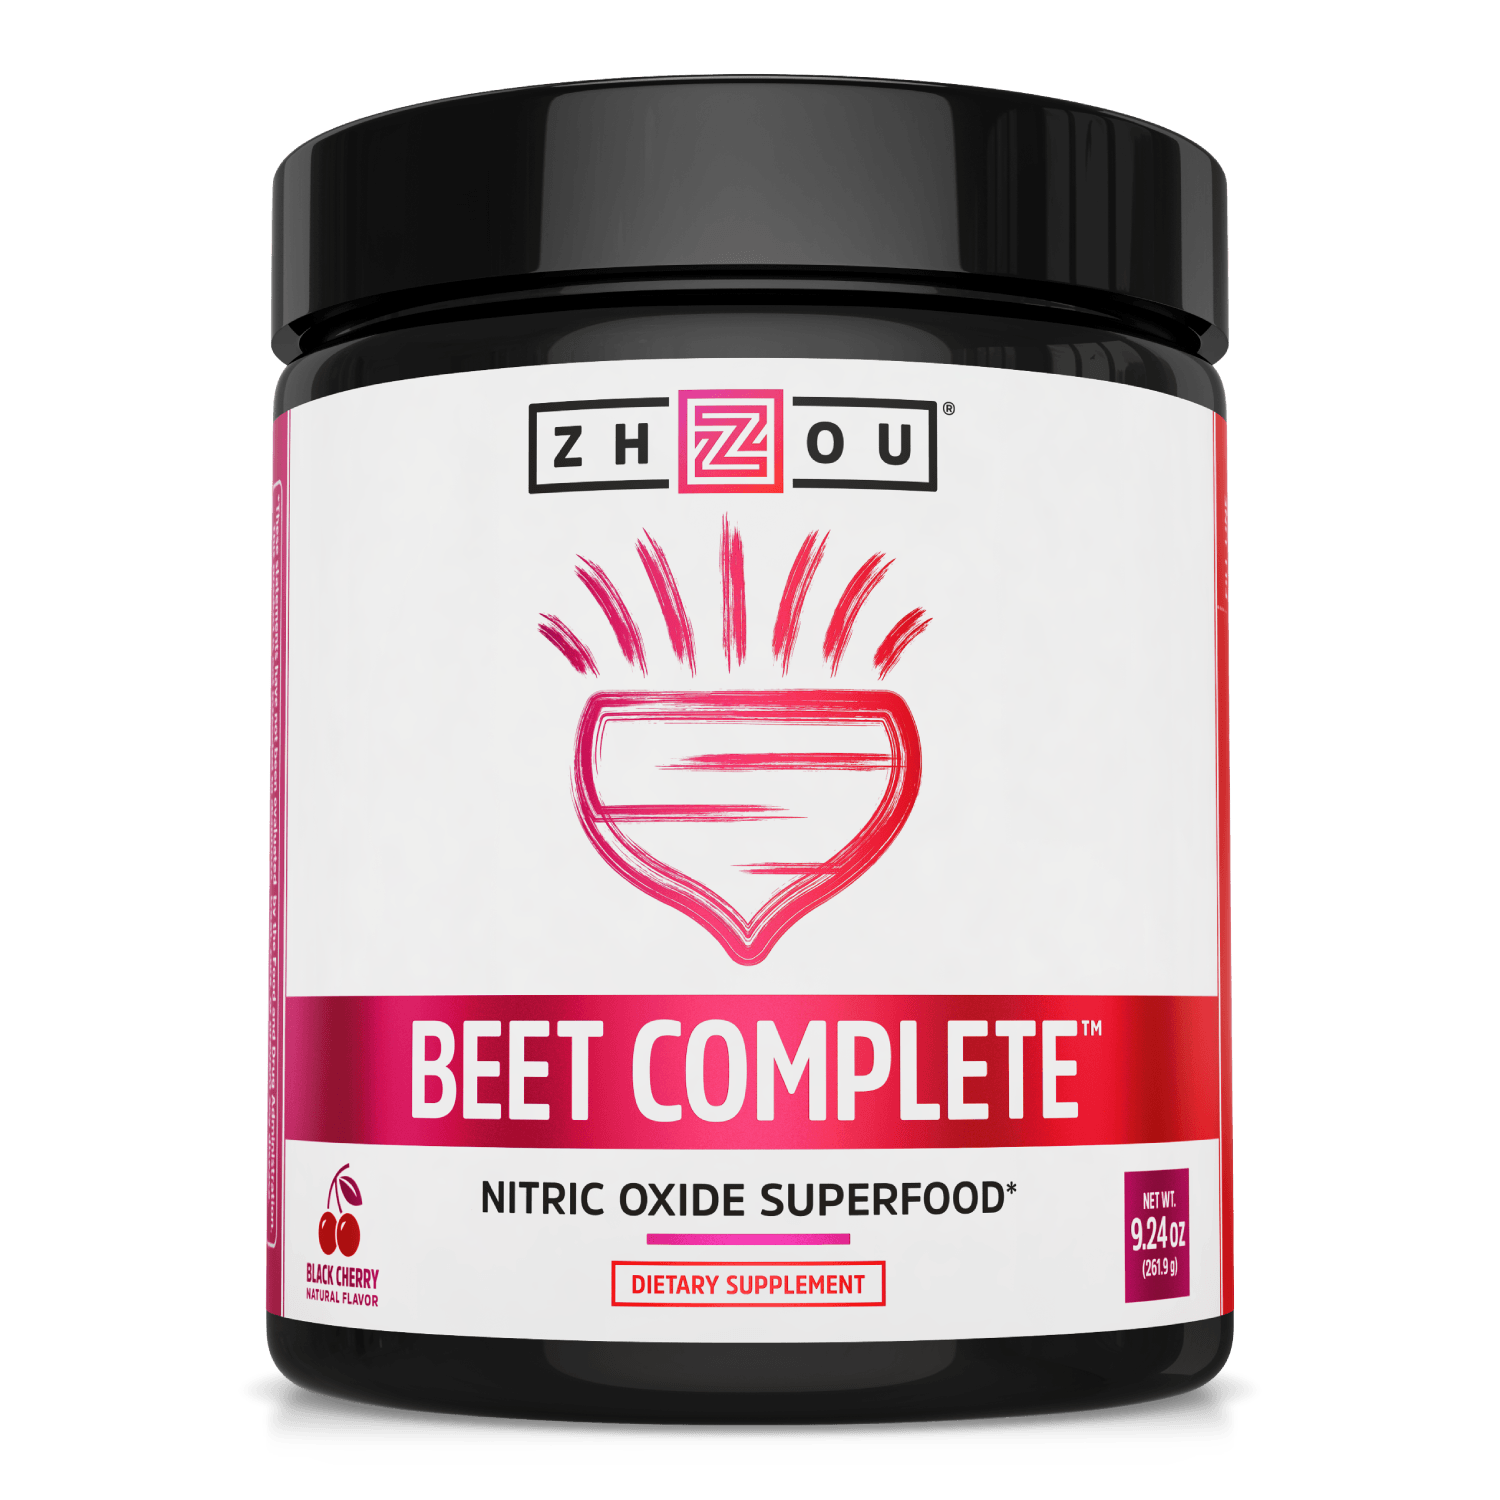 Zhou Nutrition Beet Complete Nitric Oxide Superfood. Bottle front.